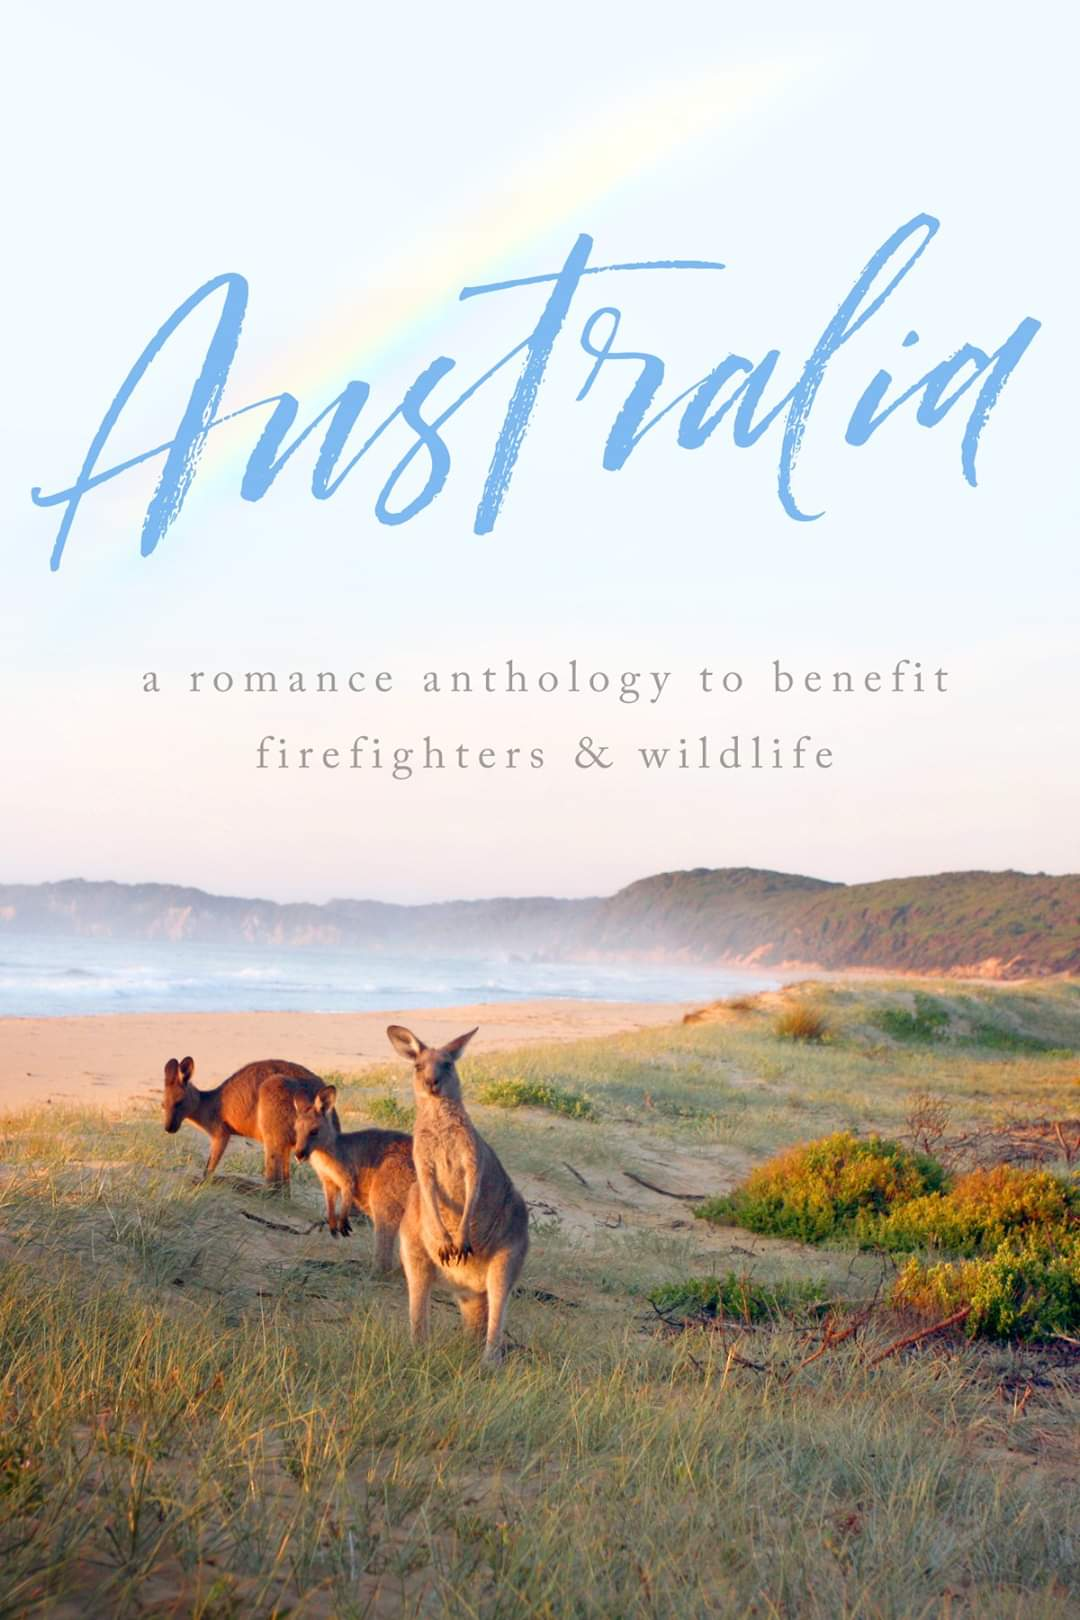 Cover Reveal and Preorder for Austrailia CharityAnthology